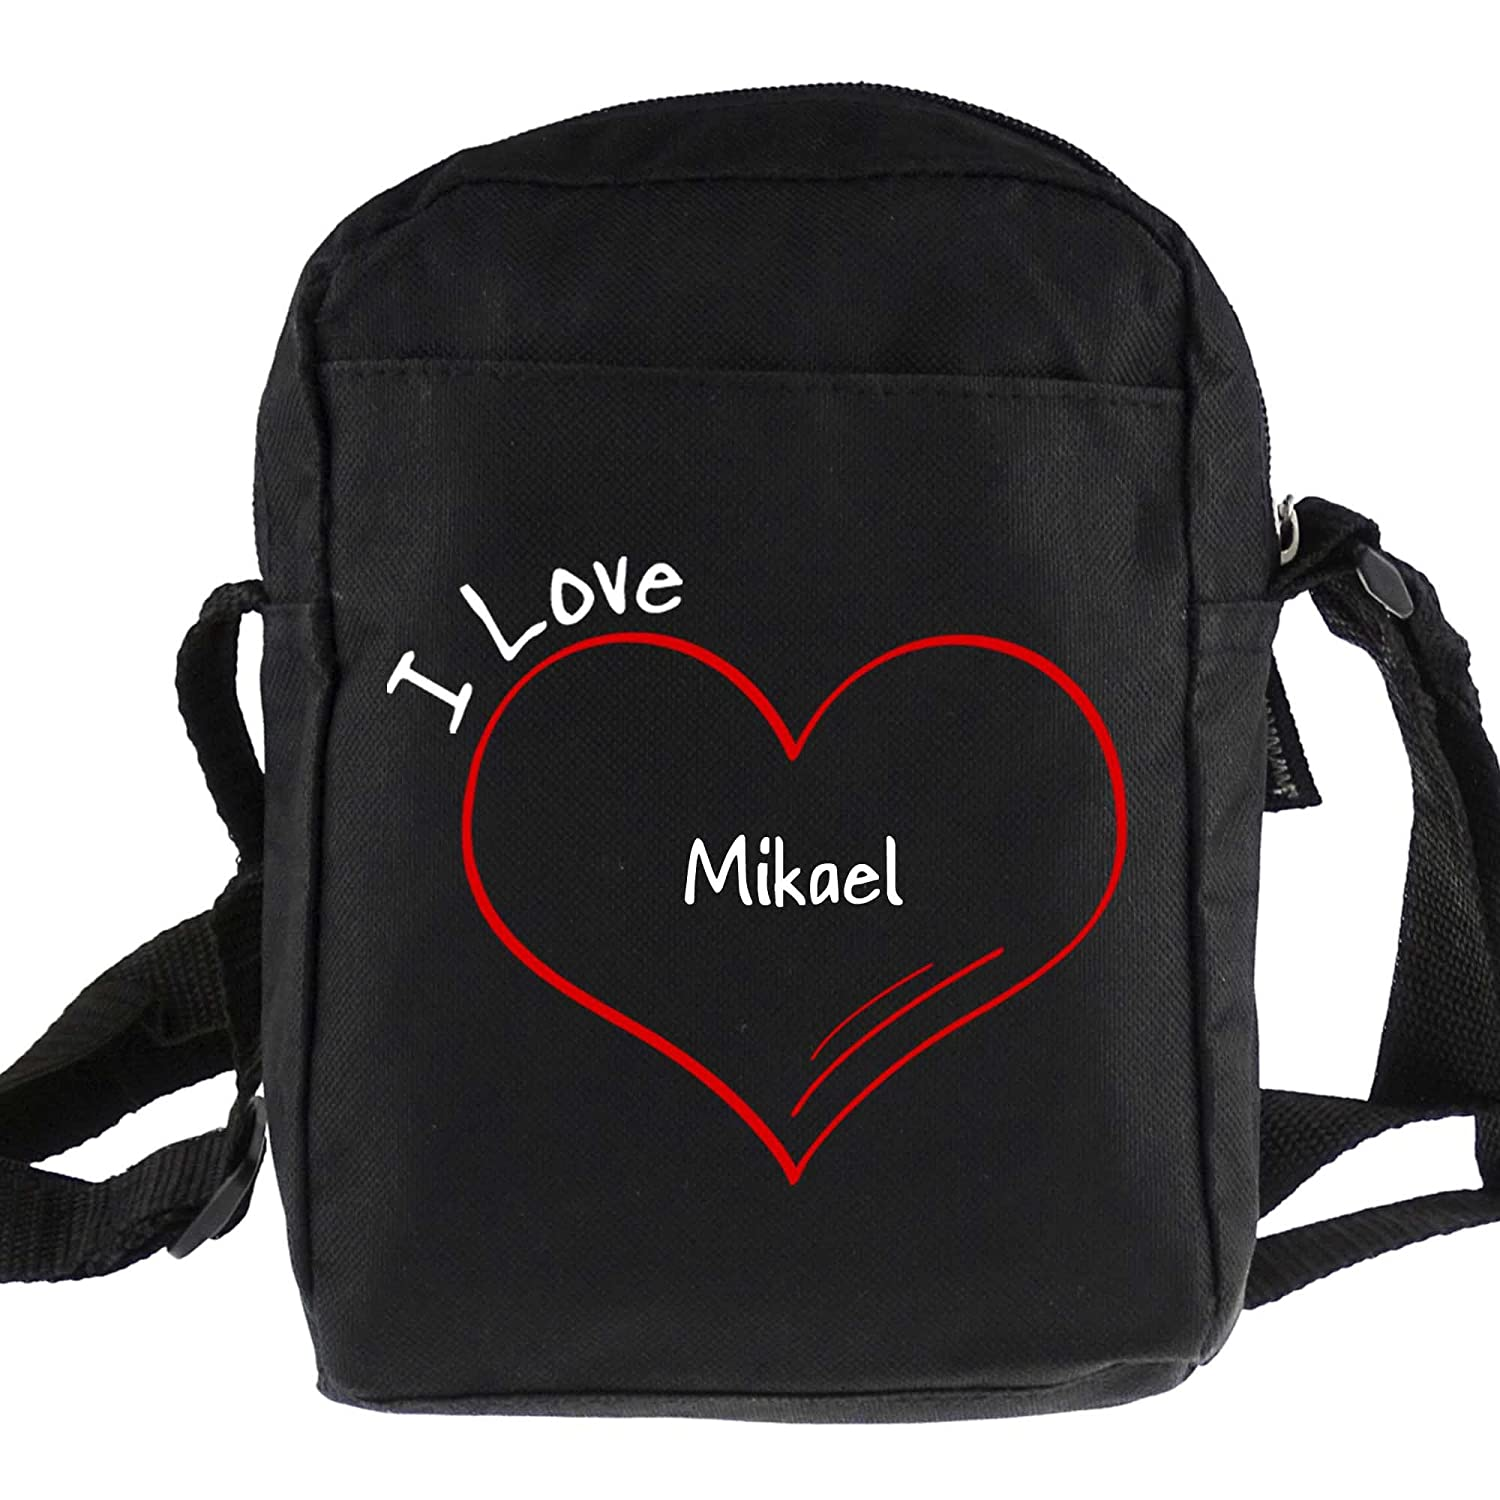 Modern I Love Mikael Black Shoulder Bag